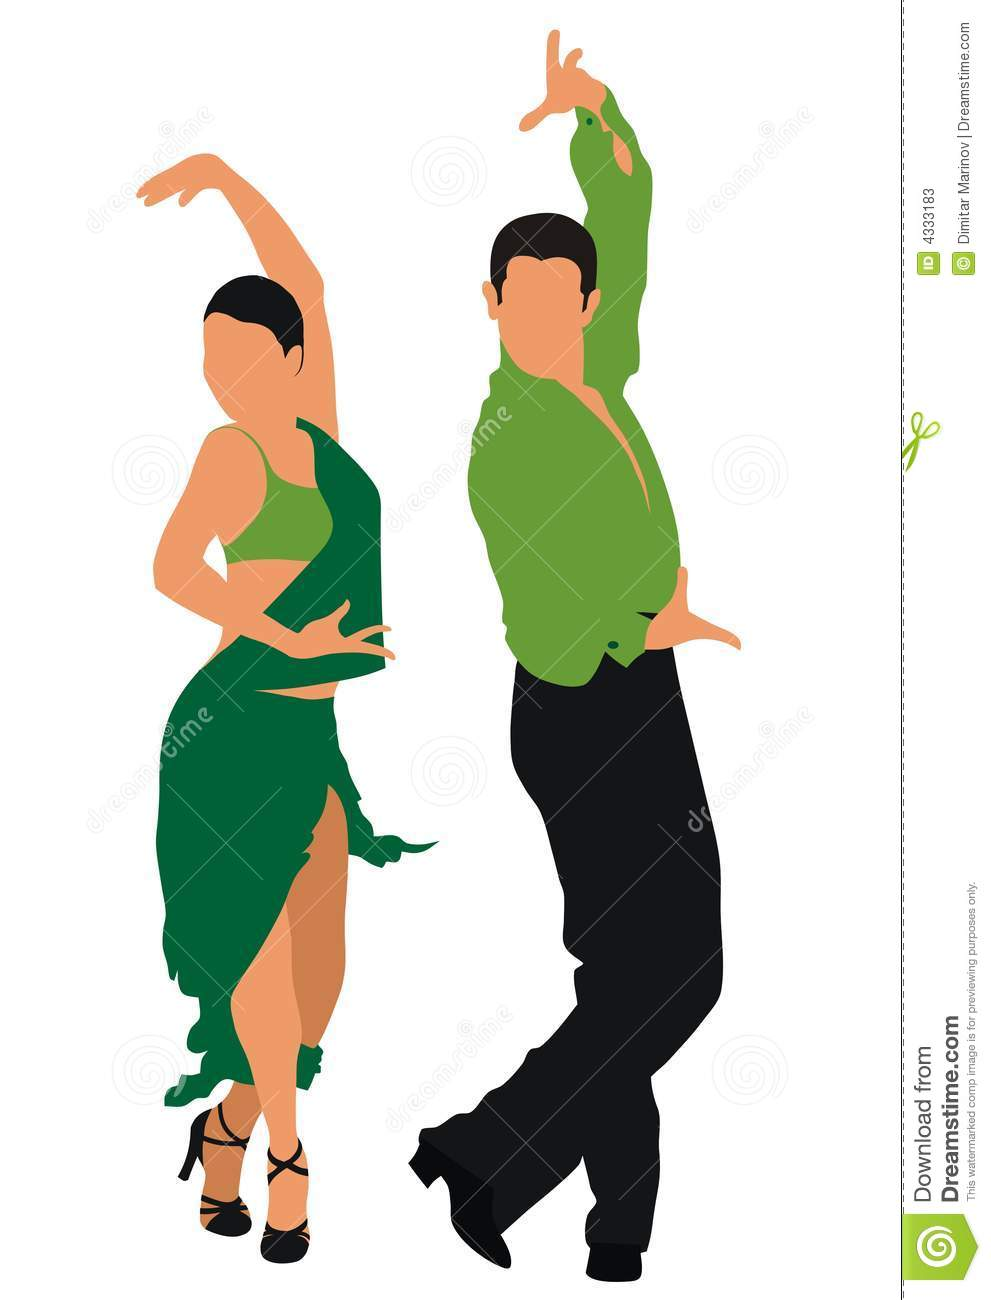 paso doble stock photos image 4333183 rock and roll clipart images rock & roll clipart free